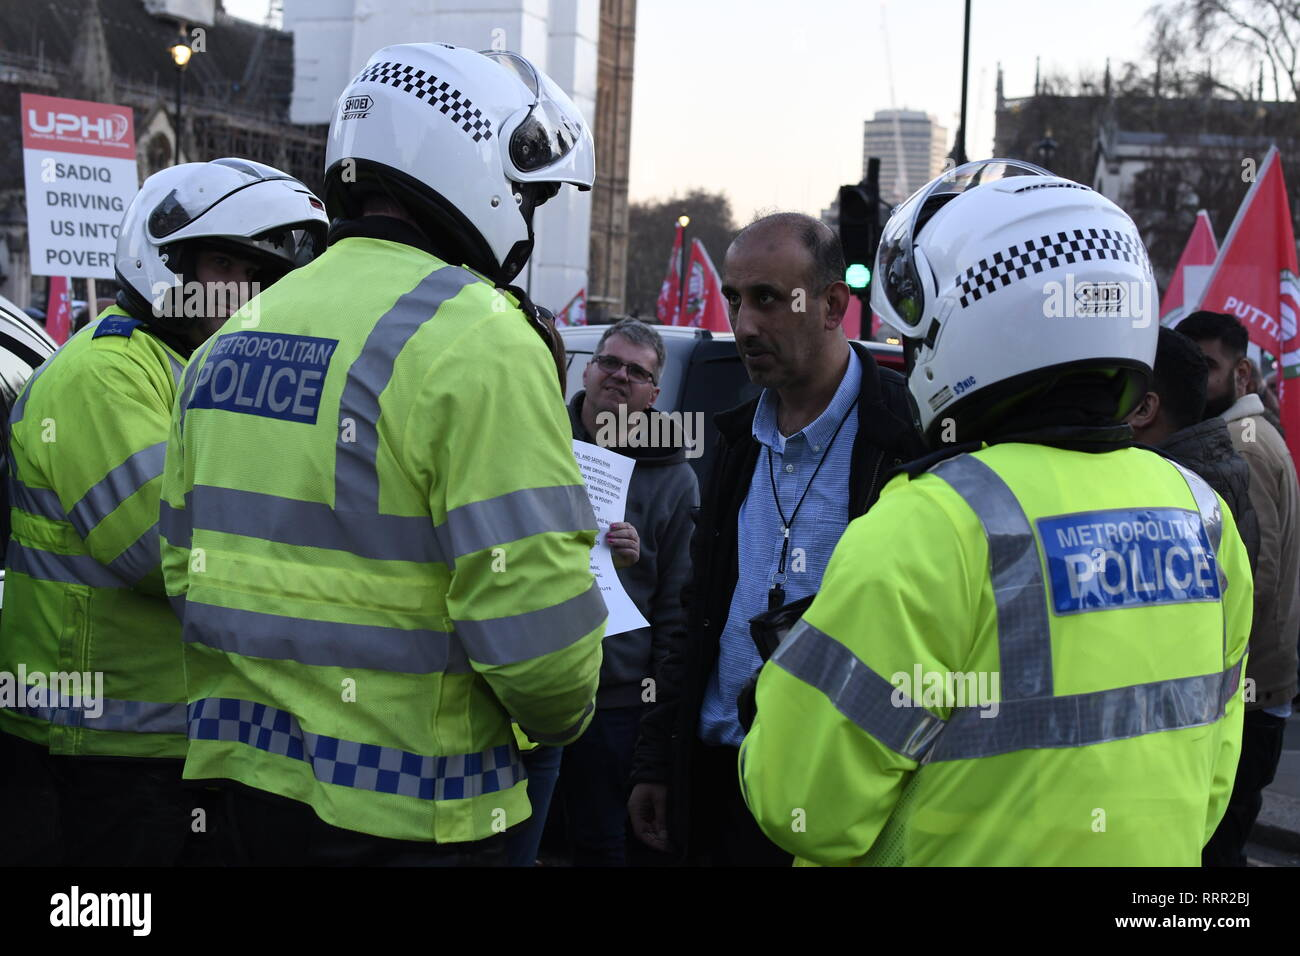 London, Greater London, UK. 25th Feb, 2019. Police officers seen talking to a demonstrator during the protest.Minicab drivers blocked Parliament Square in protest over changes to the congestion charge. Drivers are against congestion charges introduced by Mayor Sadiq Khan. TFL said the measure is necessary to reduce London's air pollution. Credit: Andres Pantoja/SOPA Images/ZUMA Wire/Alamy Live News - Stock Image